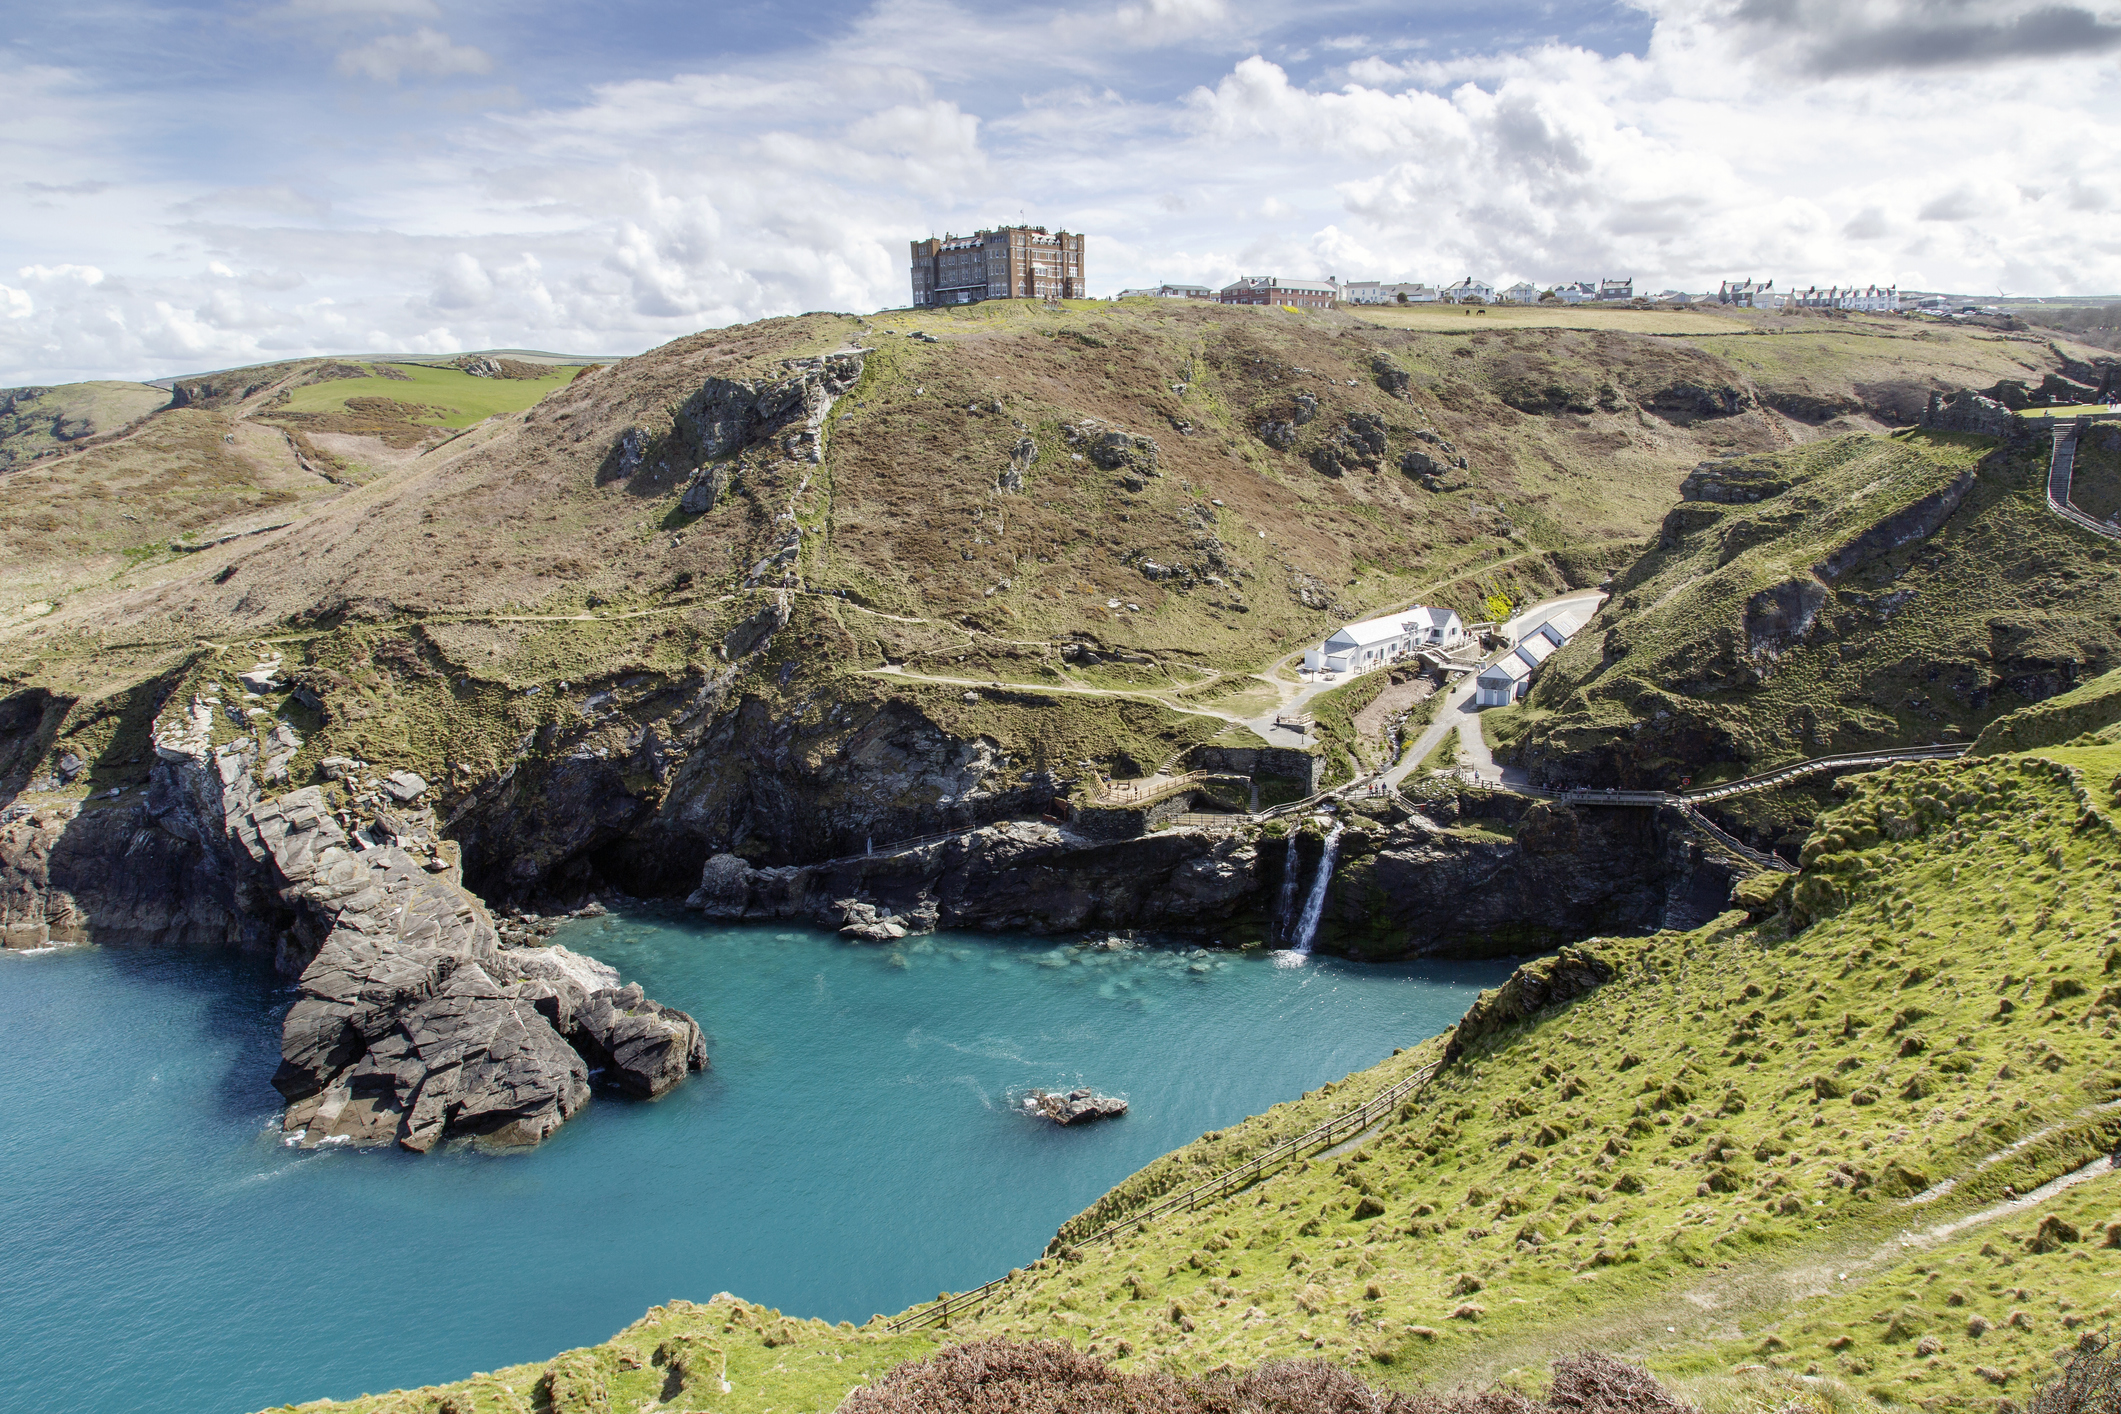 Tintagel, Cornwall, UK: April 14, 2016: A view of the main entrance to Tintagel Castle in the valley and Hotel Camelot on the cliff. There is a  beach cafe, visitors centre, public facilities and the booking desk and the entrance. The castle is maintained by English Heritage who are also responsible for Stonehenge and many other ancient sites across England.